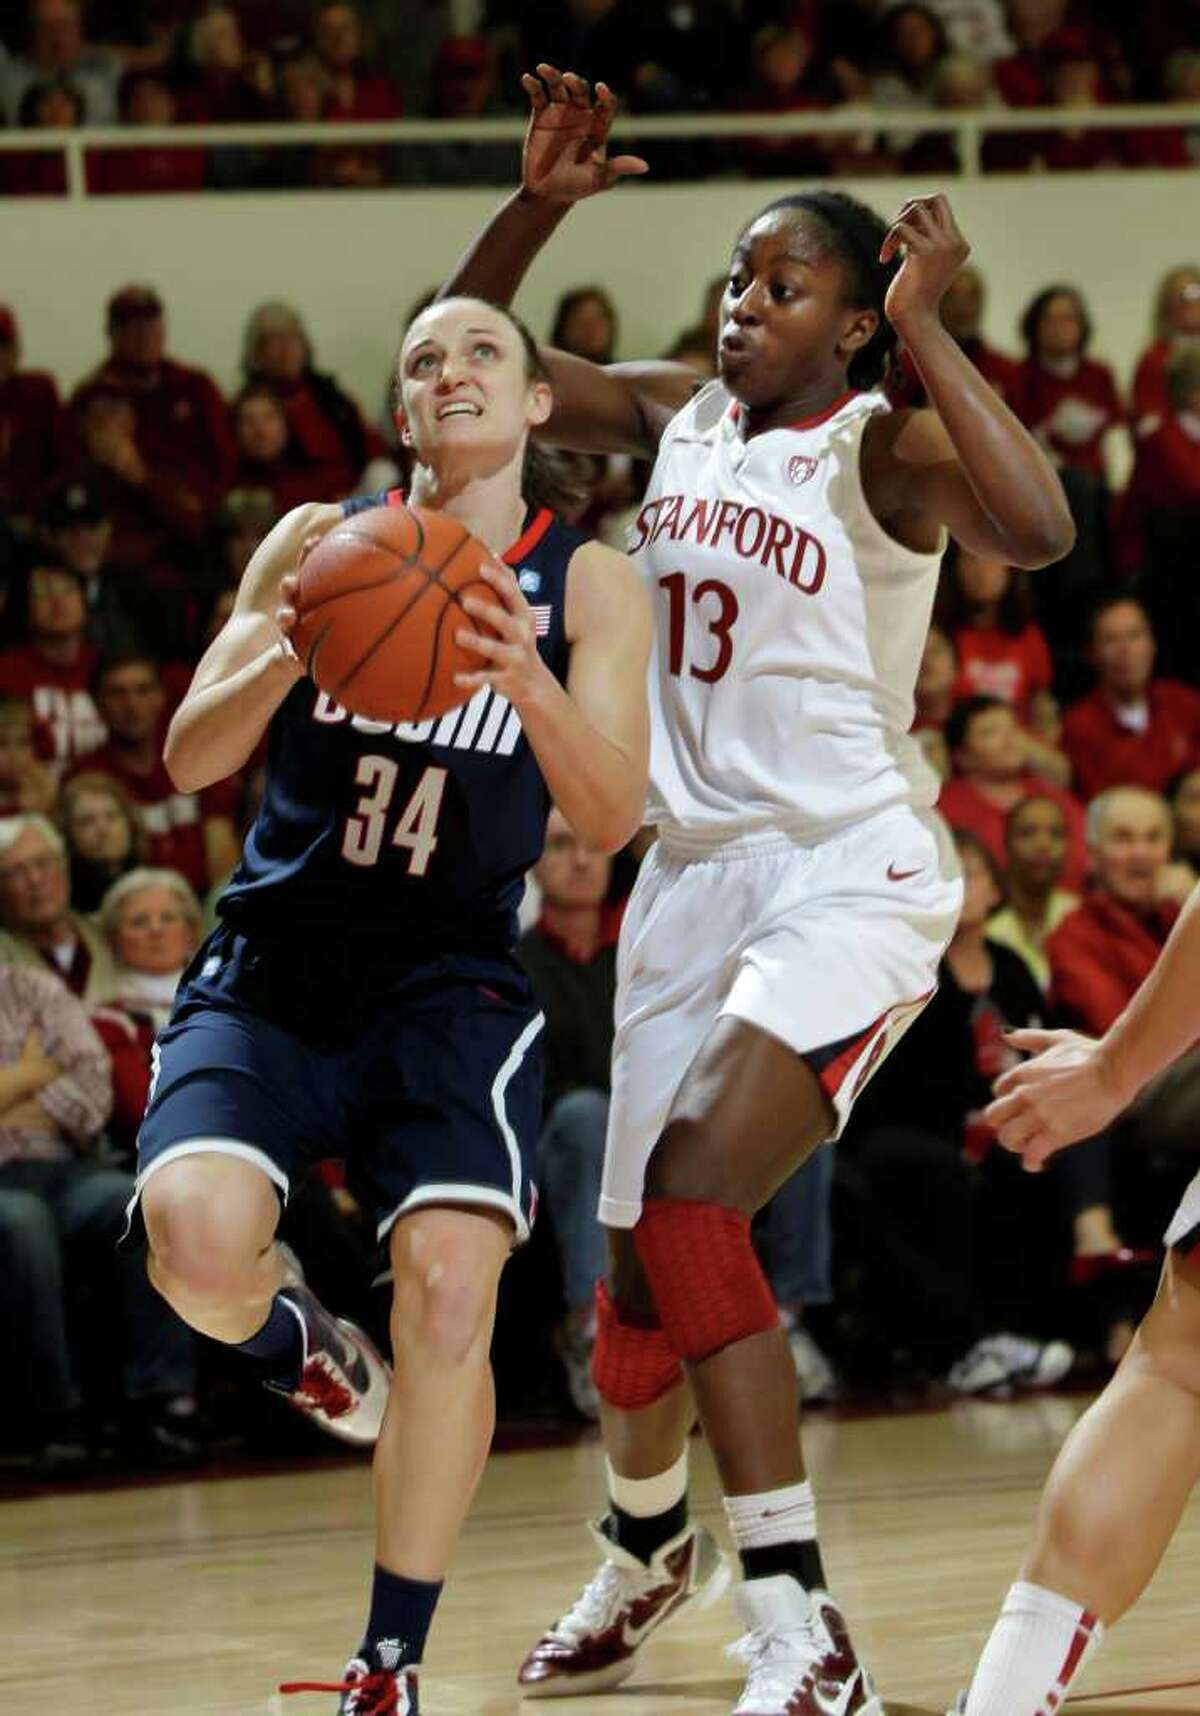 Connecticut guard Kelly Faris (34) goes to the basket in front of Stanford forward Chiney Ogwumike (13) in the first half of an NCAA college basketball game in Stanford, Calif., Thursday, Dec. 30, 2010. (AP Photo/Paul Sakuma)